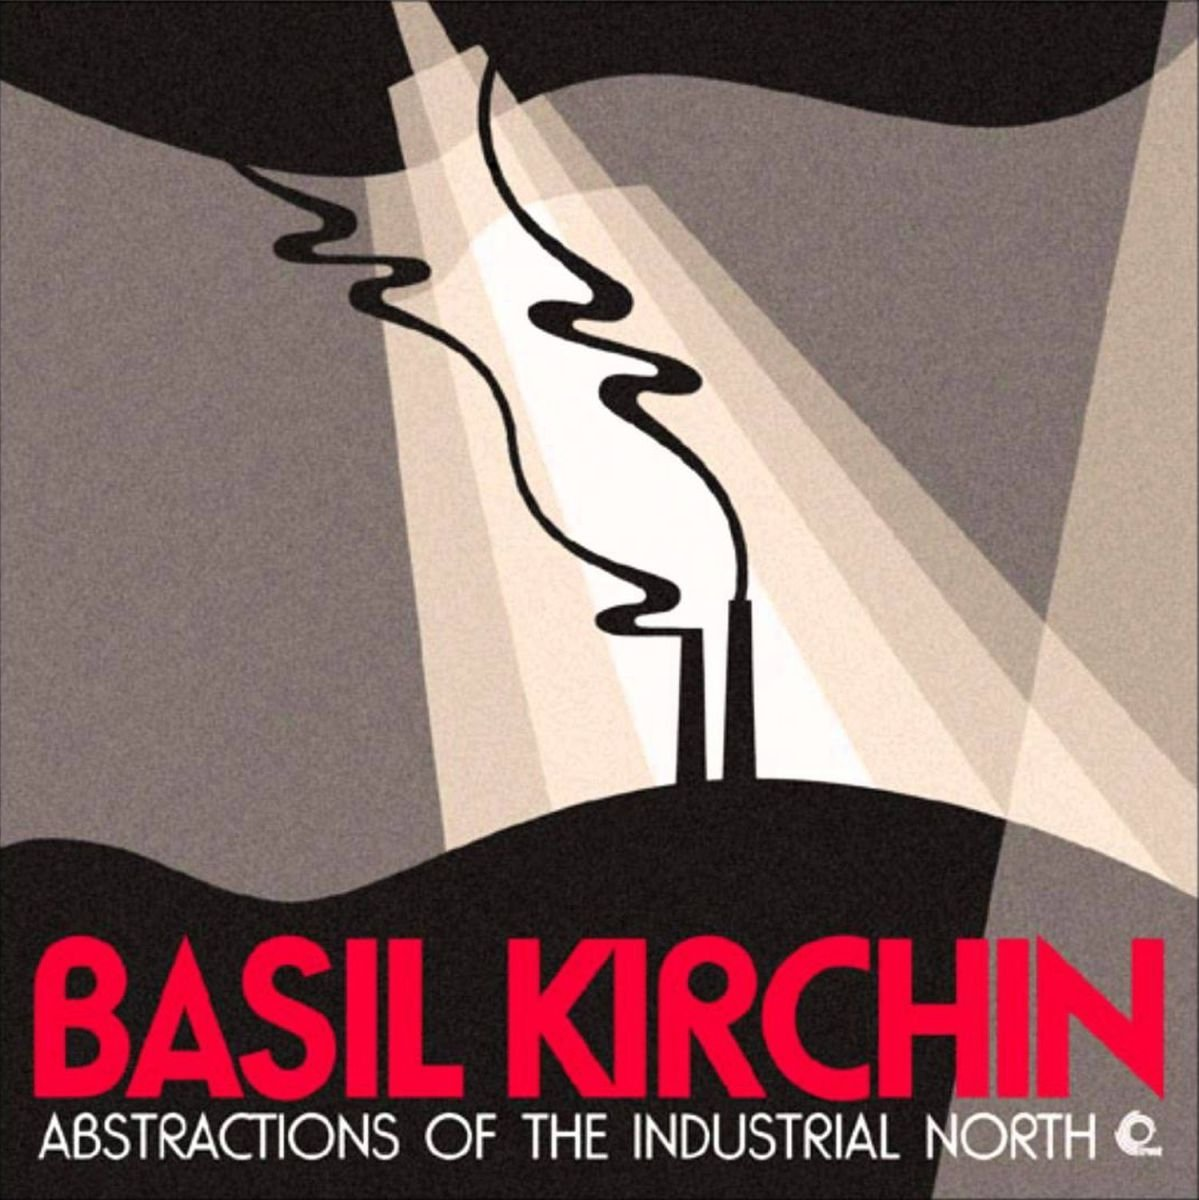 Abstractions of the Industrial North                                                                                                                                                                                                                                                    <span class=